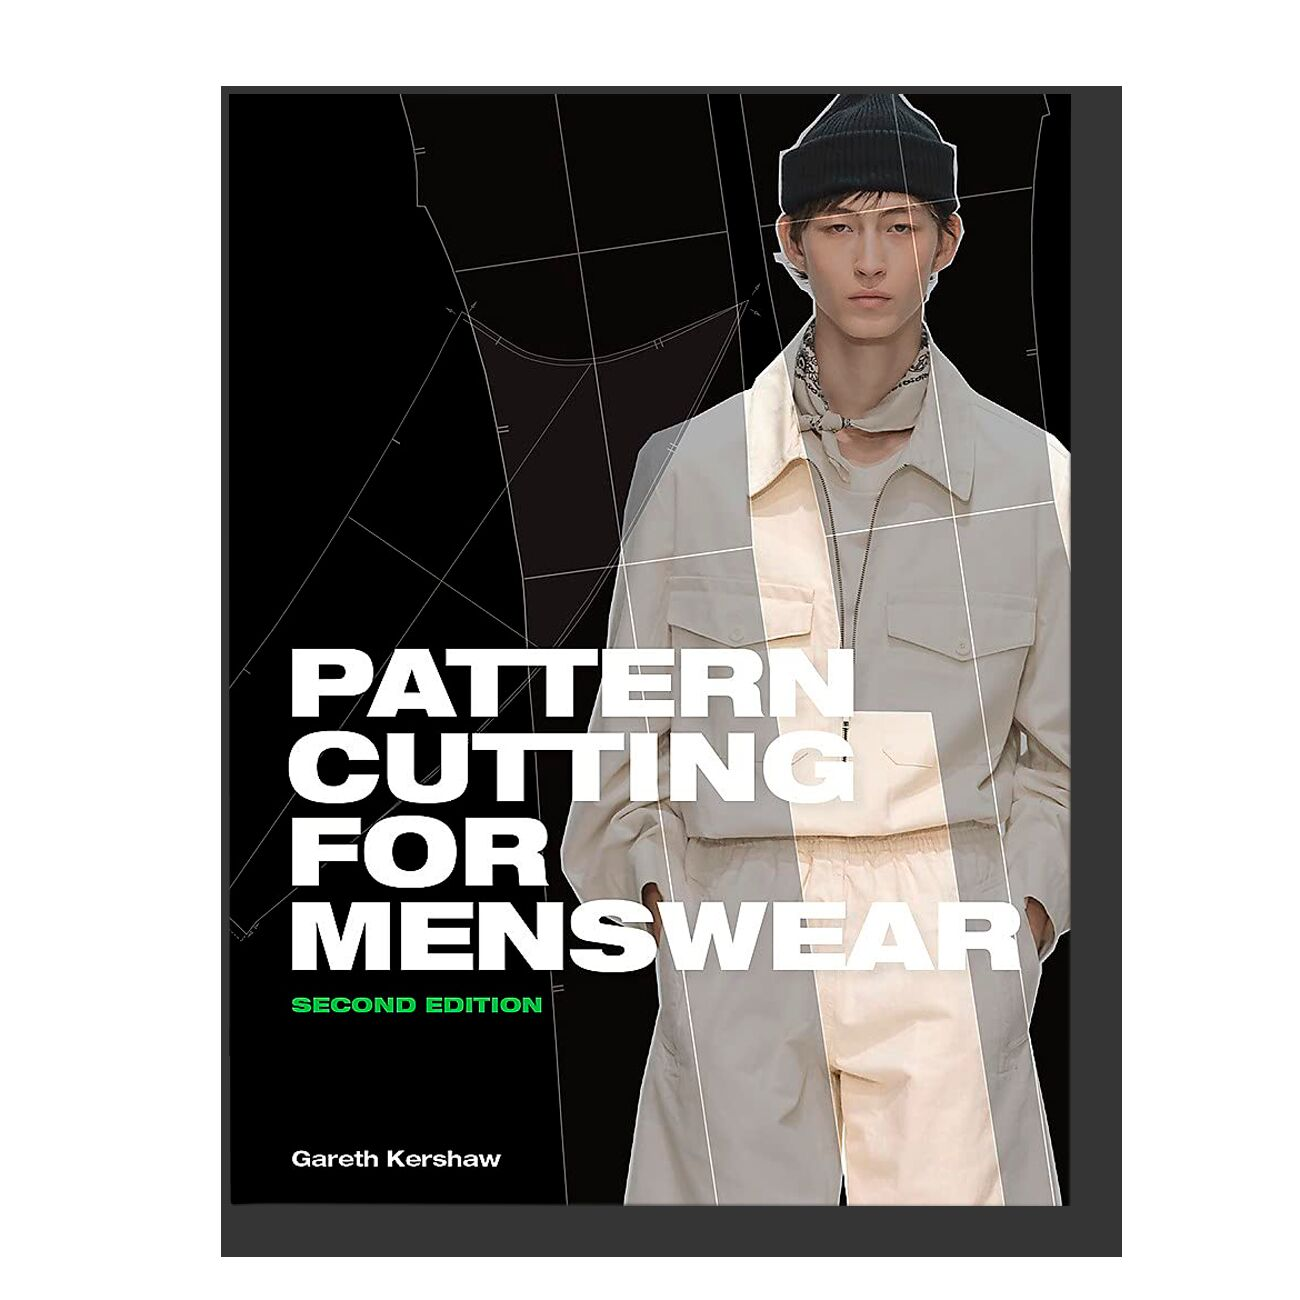 Pattern Cutting for Menswear (second edition)